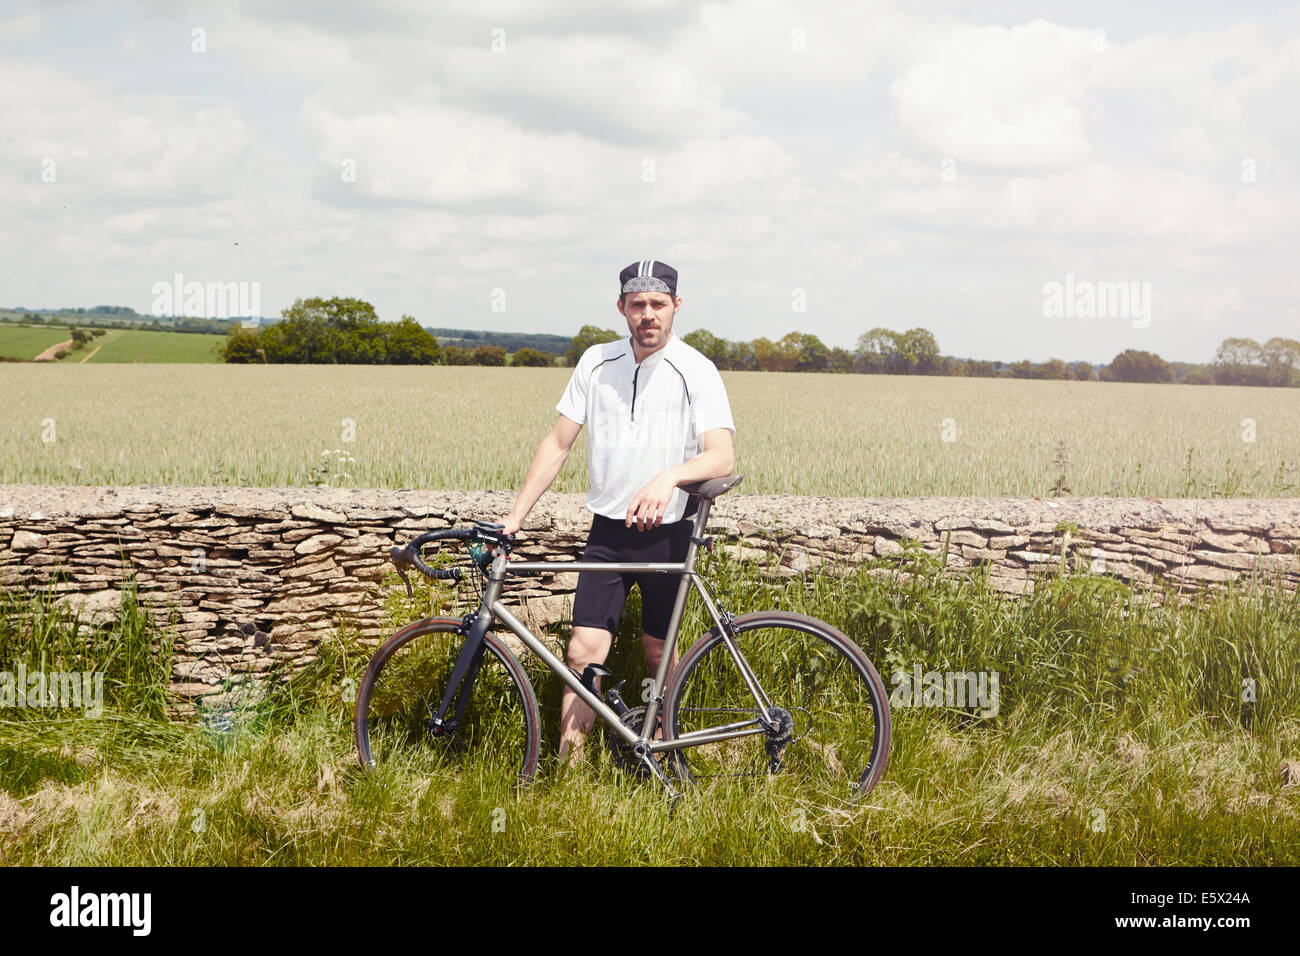 Cyclist standing by stone wall, Cotswolds, UK - Stock Image